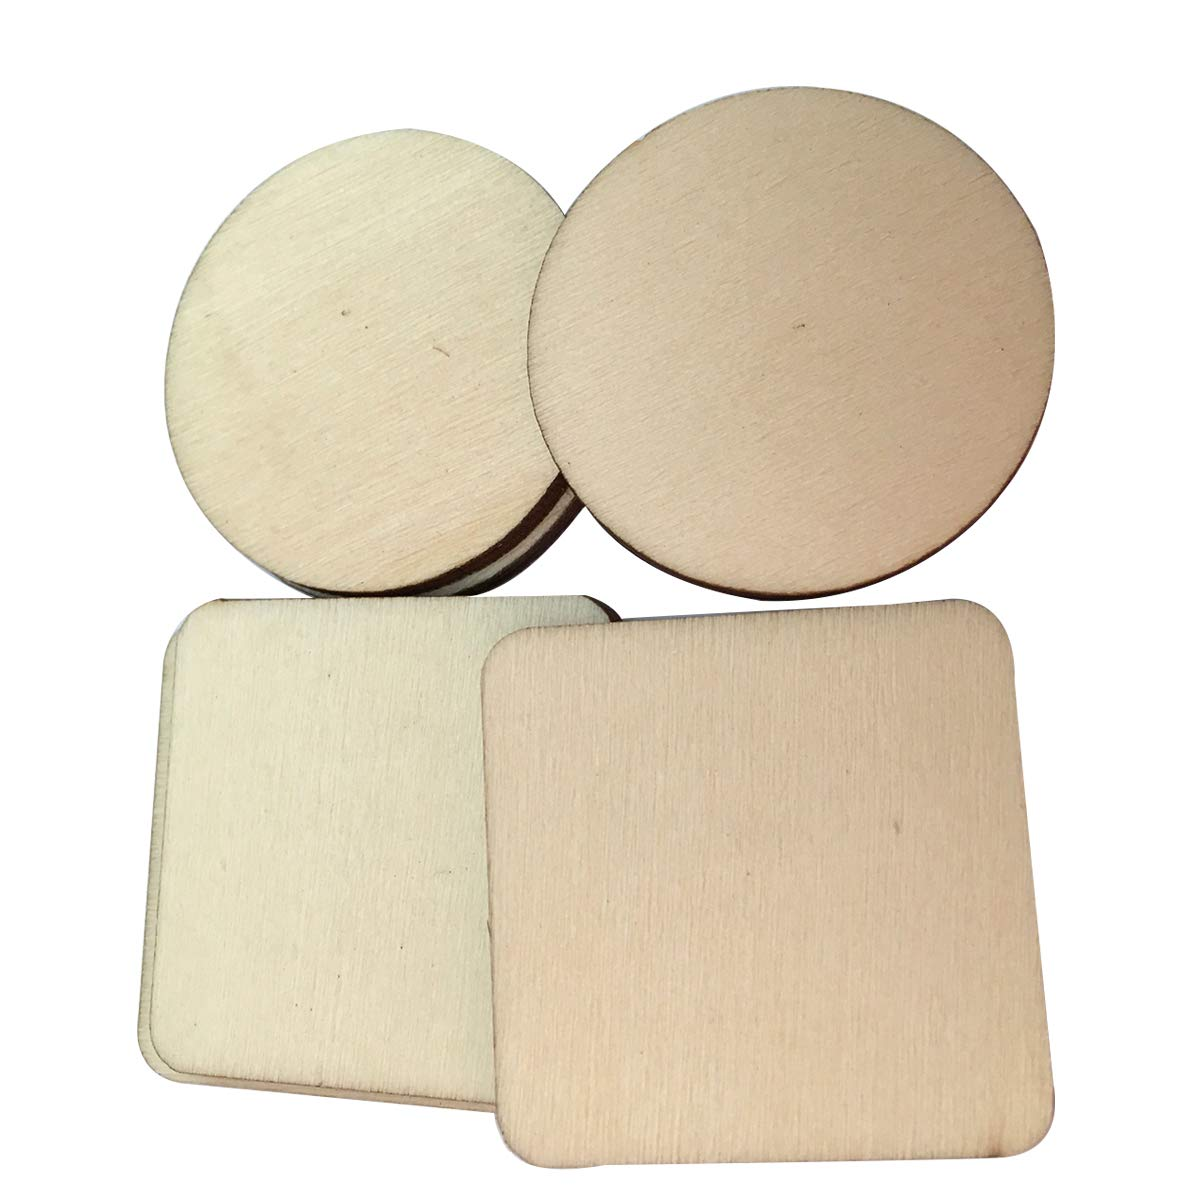 SUPVOX 100 Pcs DIY Blank Round Wood Slices and Square Unfinished Wooden Christmas Craft Embellishments for Home Party Wedding Decor